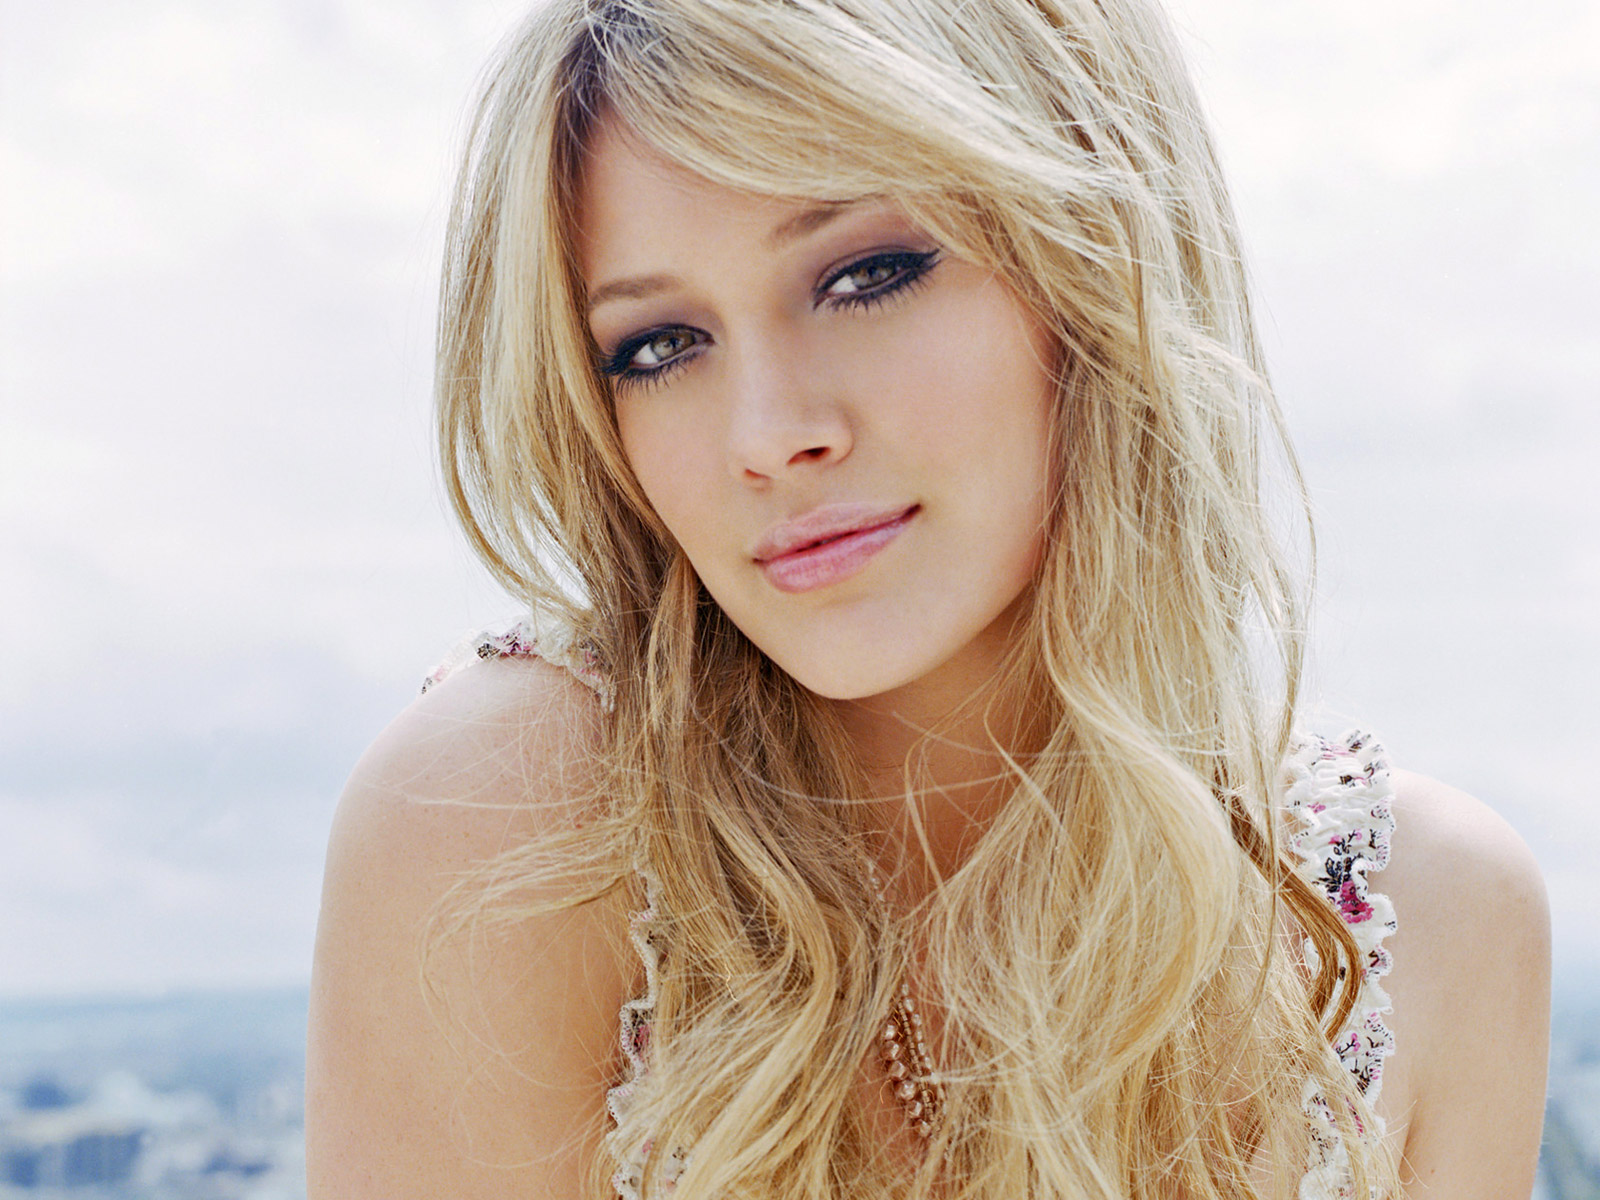 http://3.bp.blogspot.com/-eAeu8S_d43M/TfXFe54CefI/AAAAAAAAACU/cNCMKStCtJs/s1600/Hilary+Duff+HQ+wallpaper+on+all+salibraty+%252812%2529.jpg